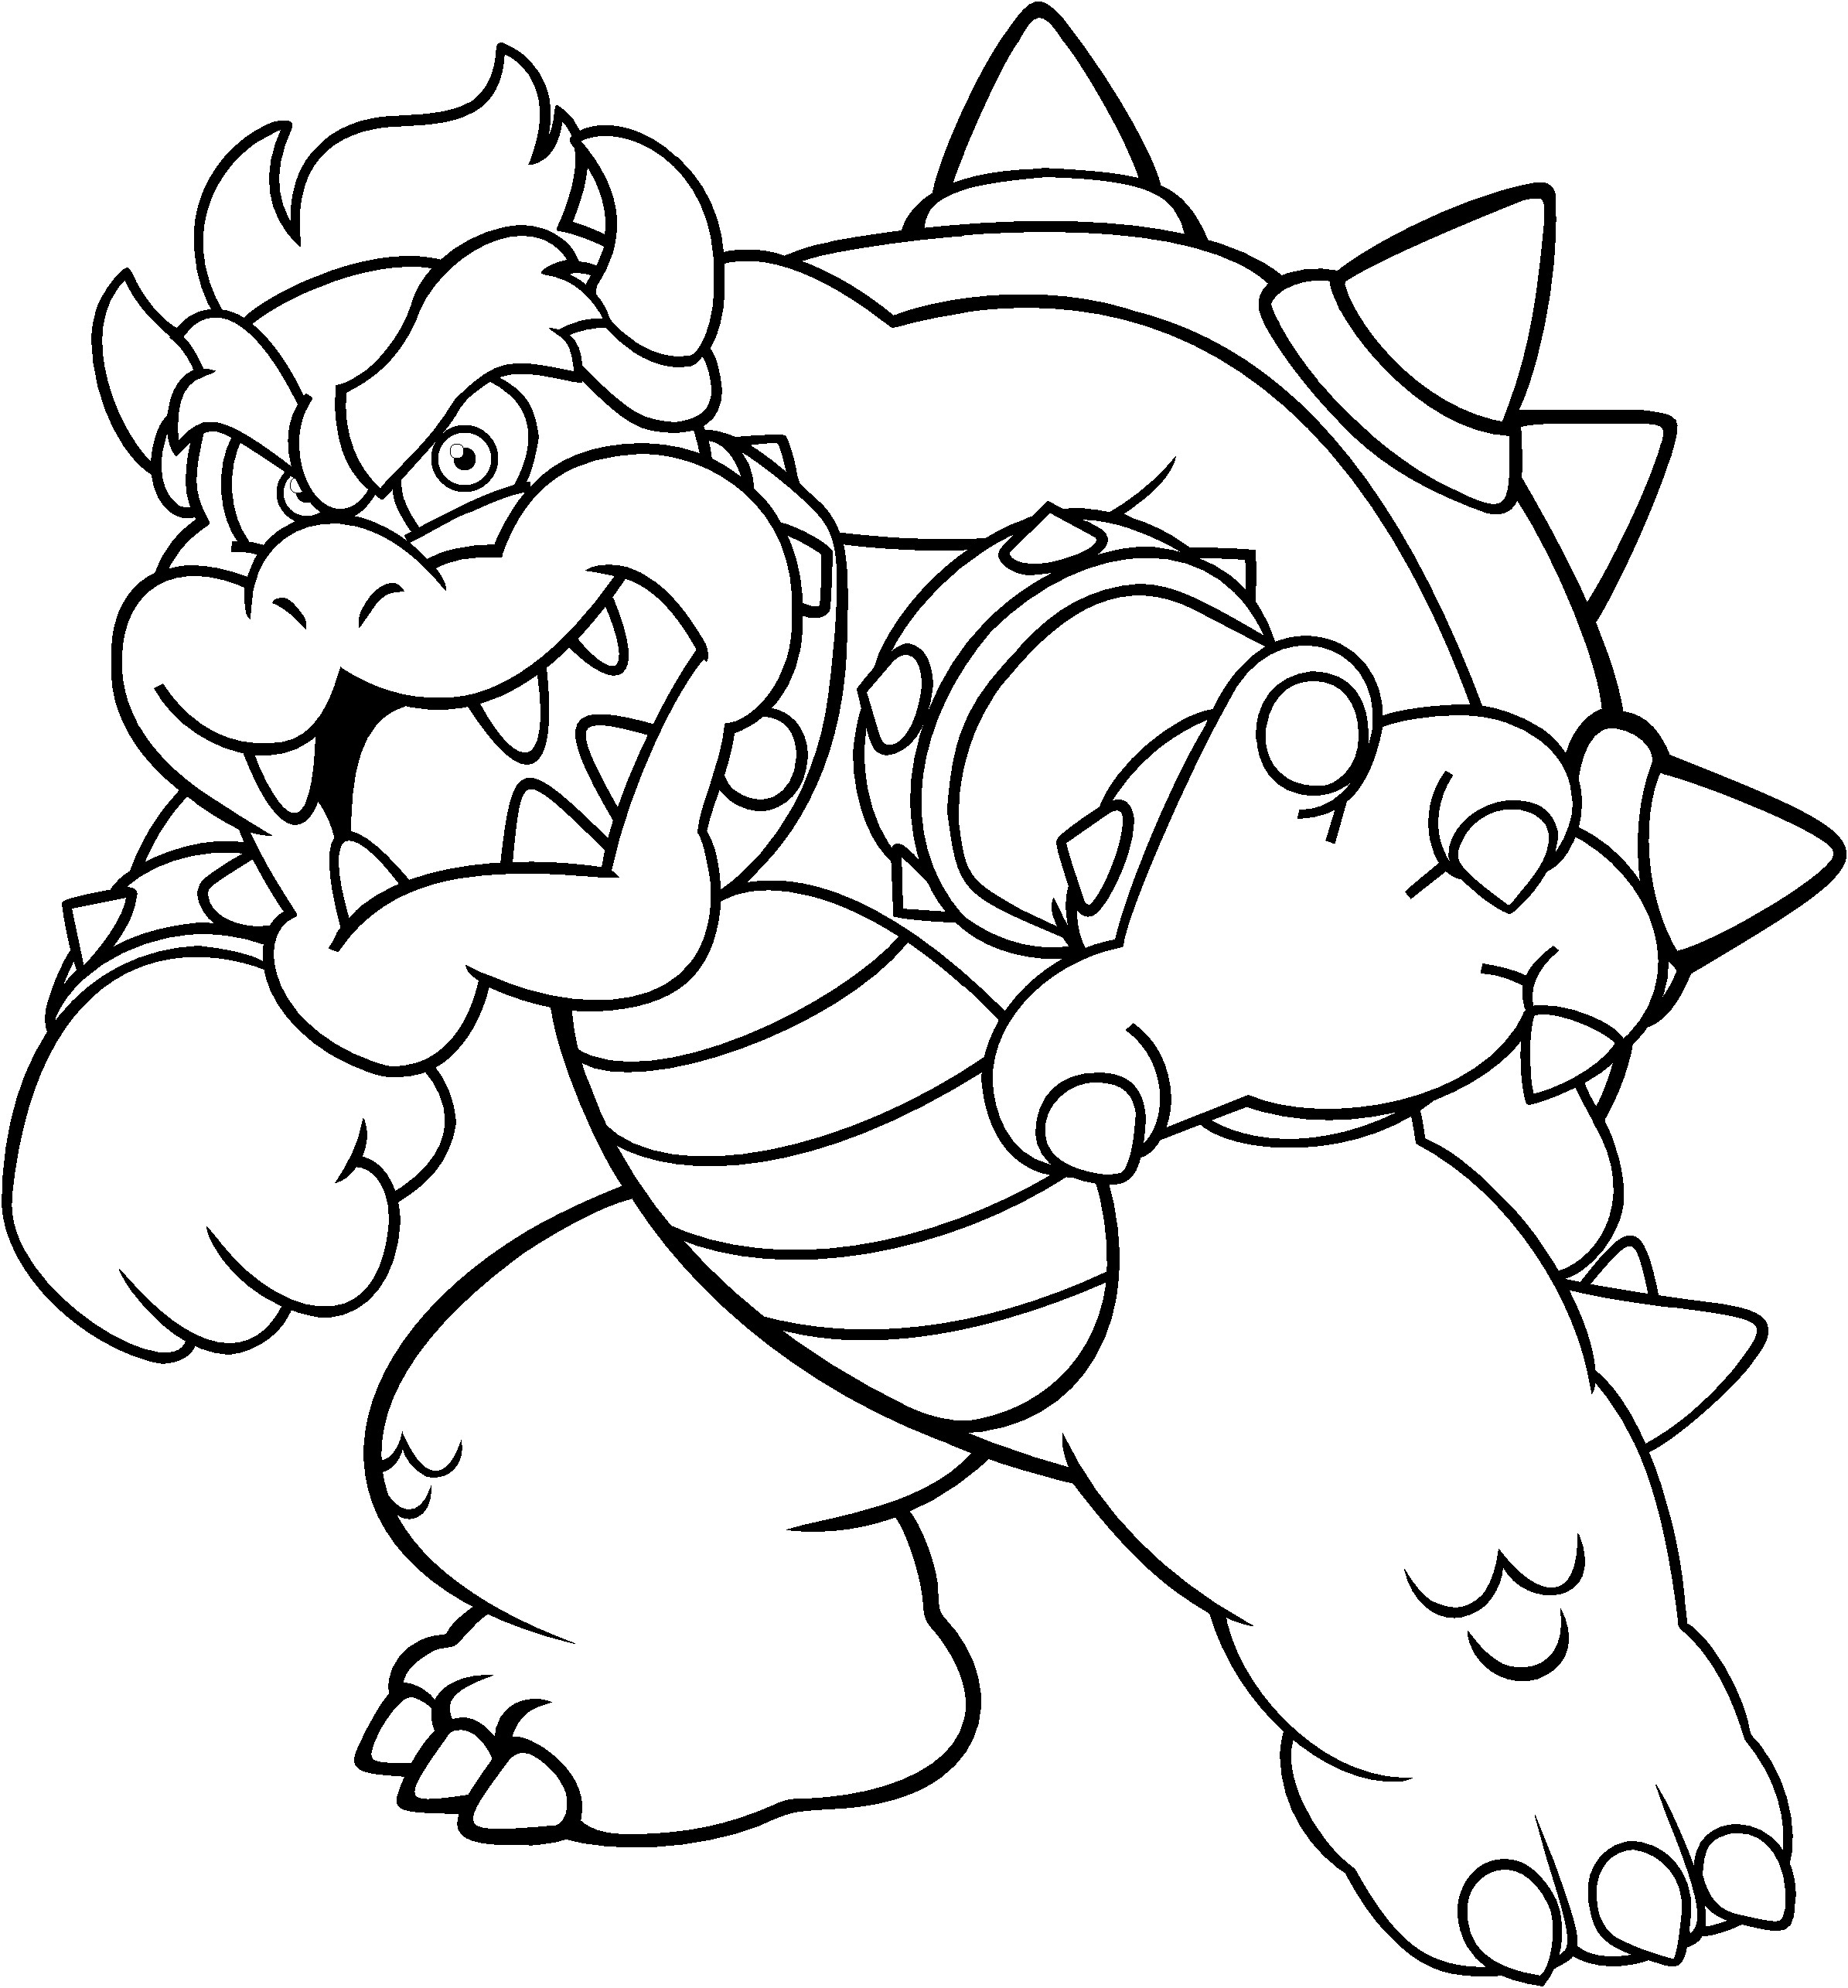 24+ Glamorous Koopaling Coloring Pages  You'll Love